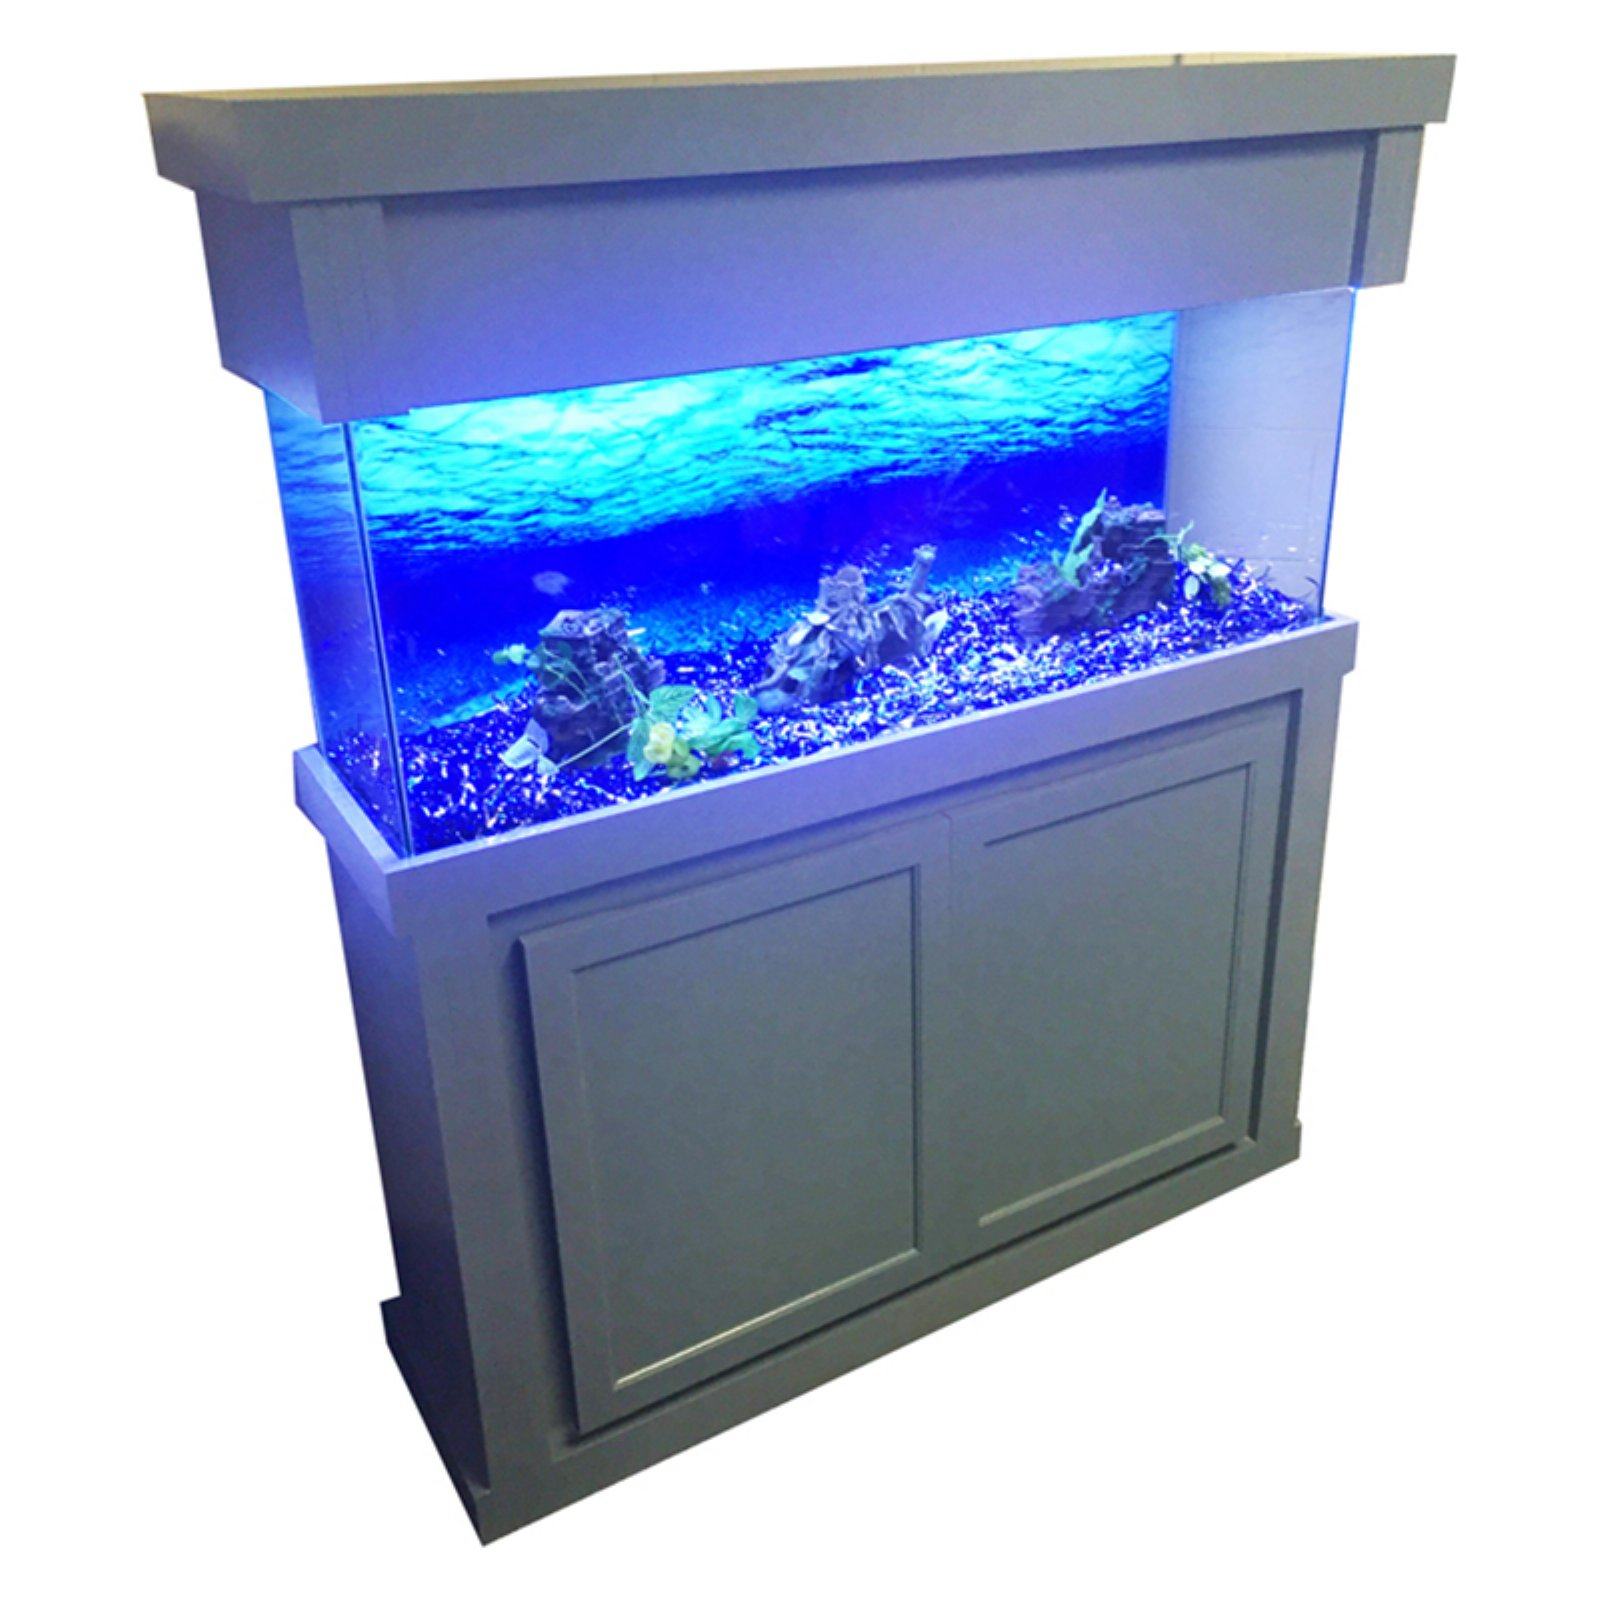 R;J Enterprises Modern Birch Aquarium Stand